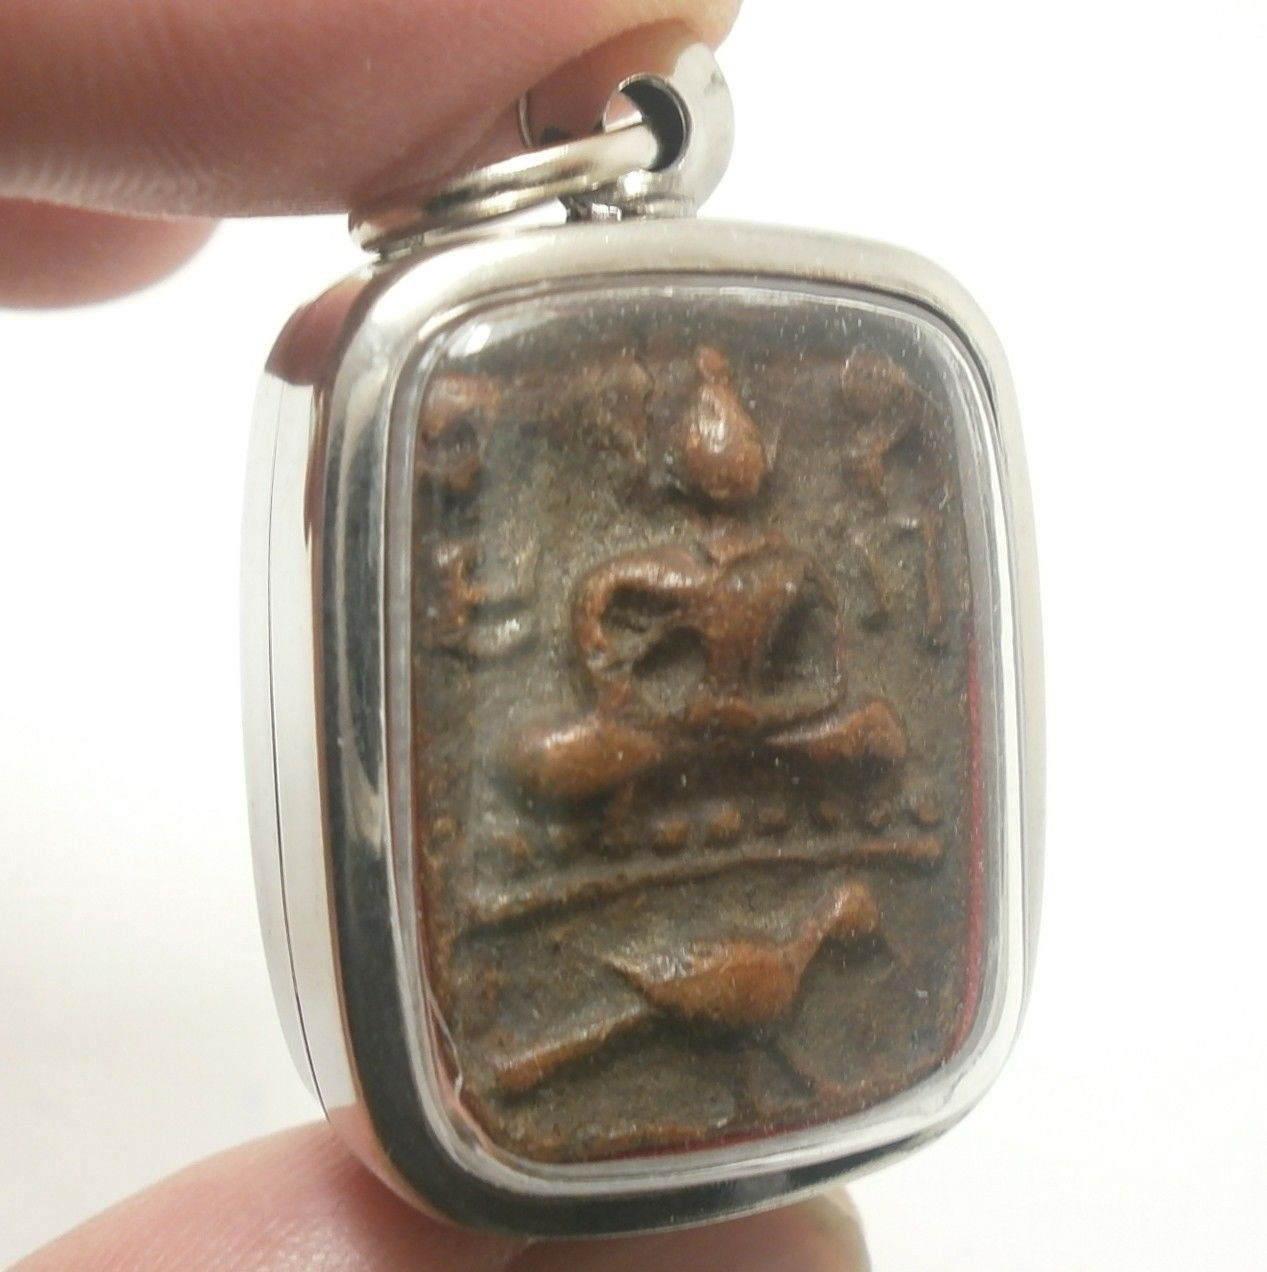 LP PARN BUDDHA RIDING BIRD AMULET LUCKY RICH MIRACLE PENDANT THAILAND NICE GIFT image 2